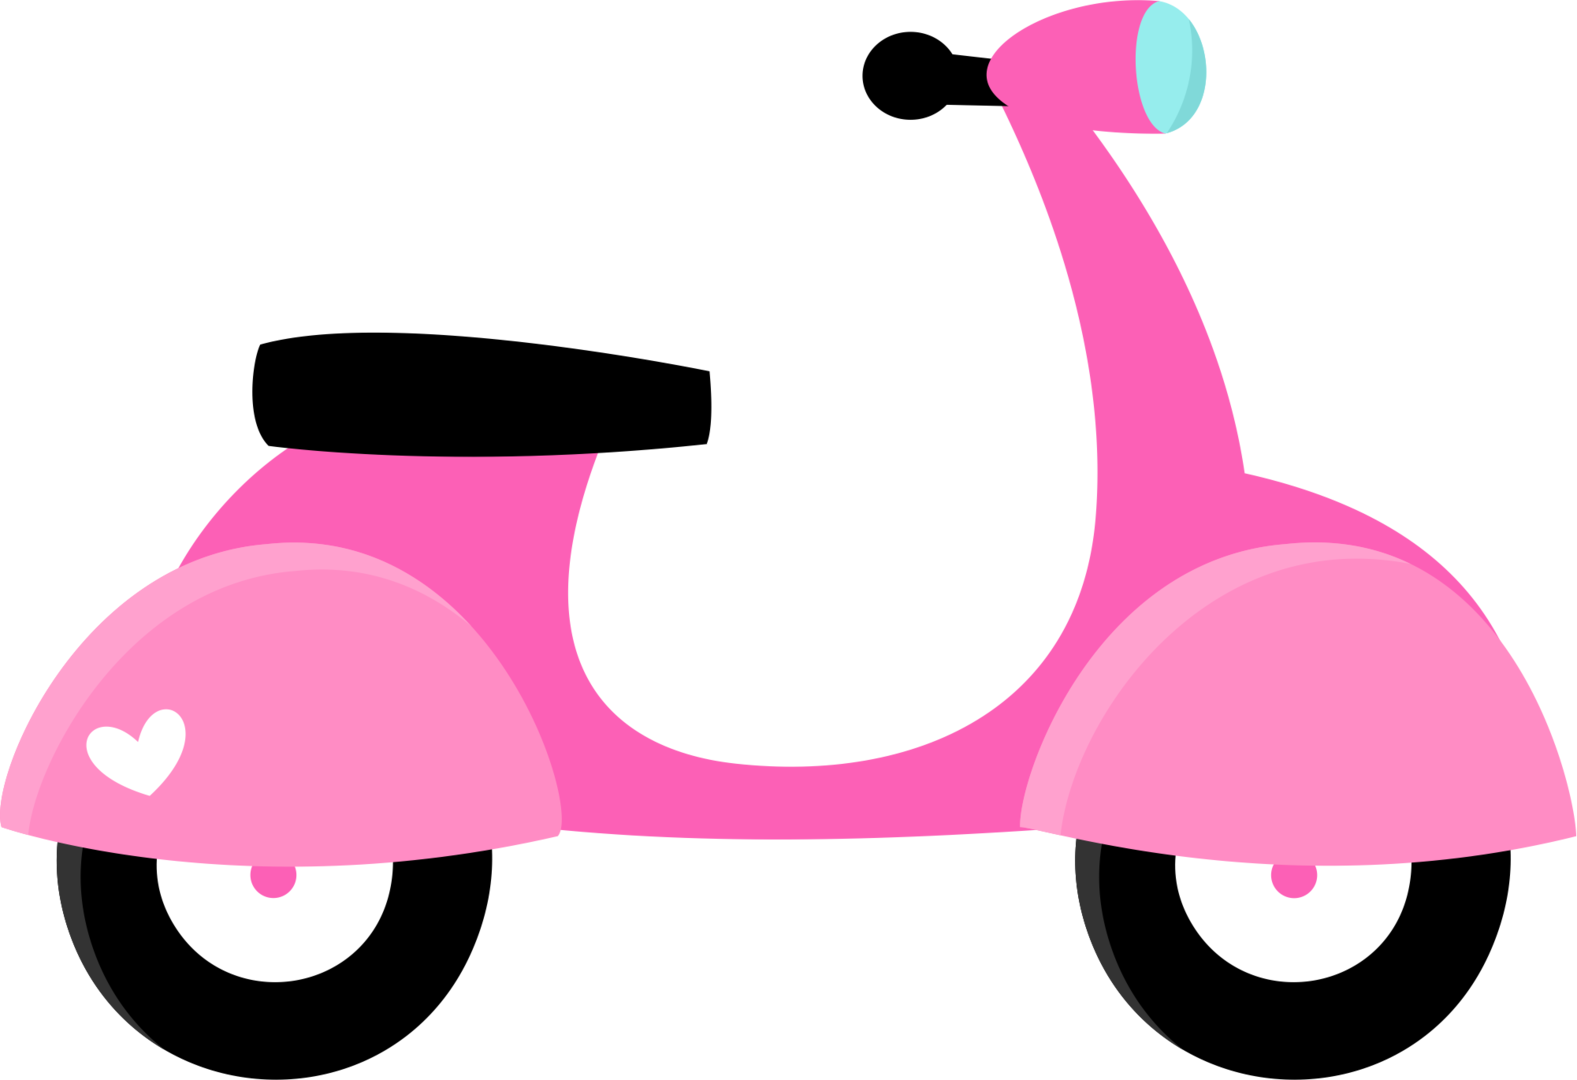 Minus say hello parisianplea. Scooter clipart pink scooter